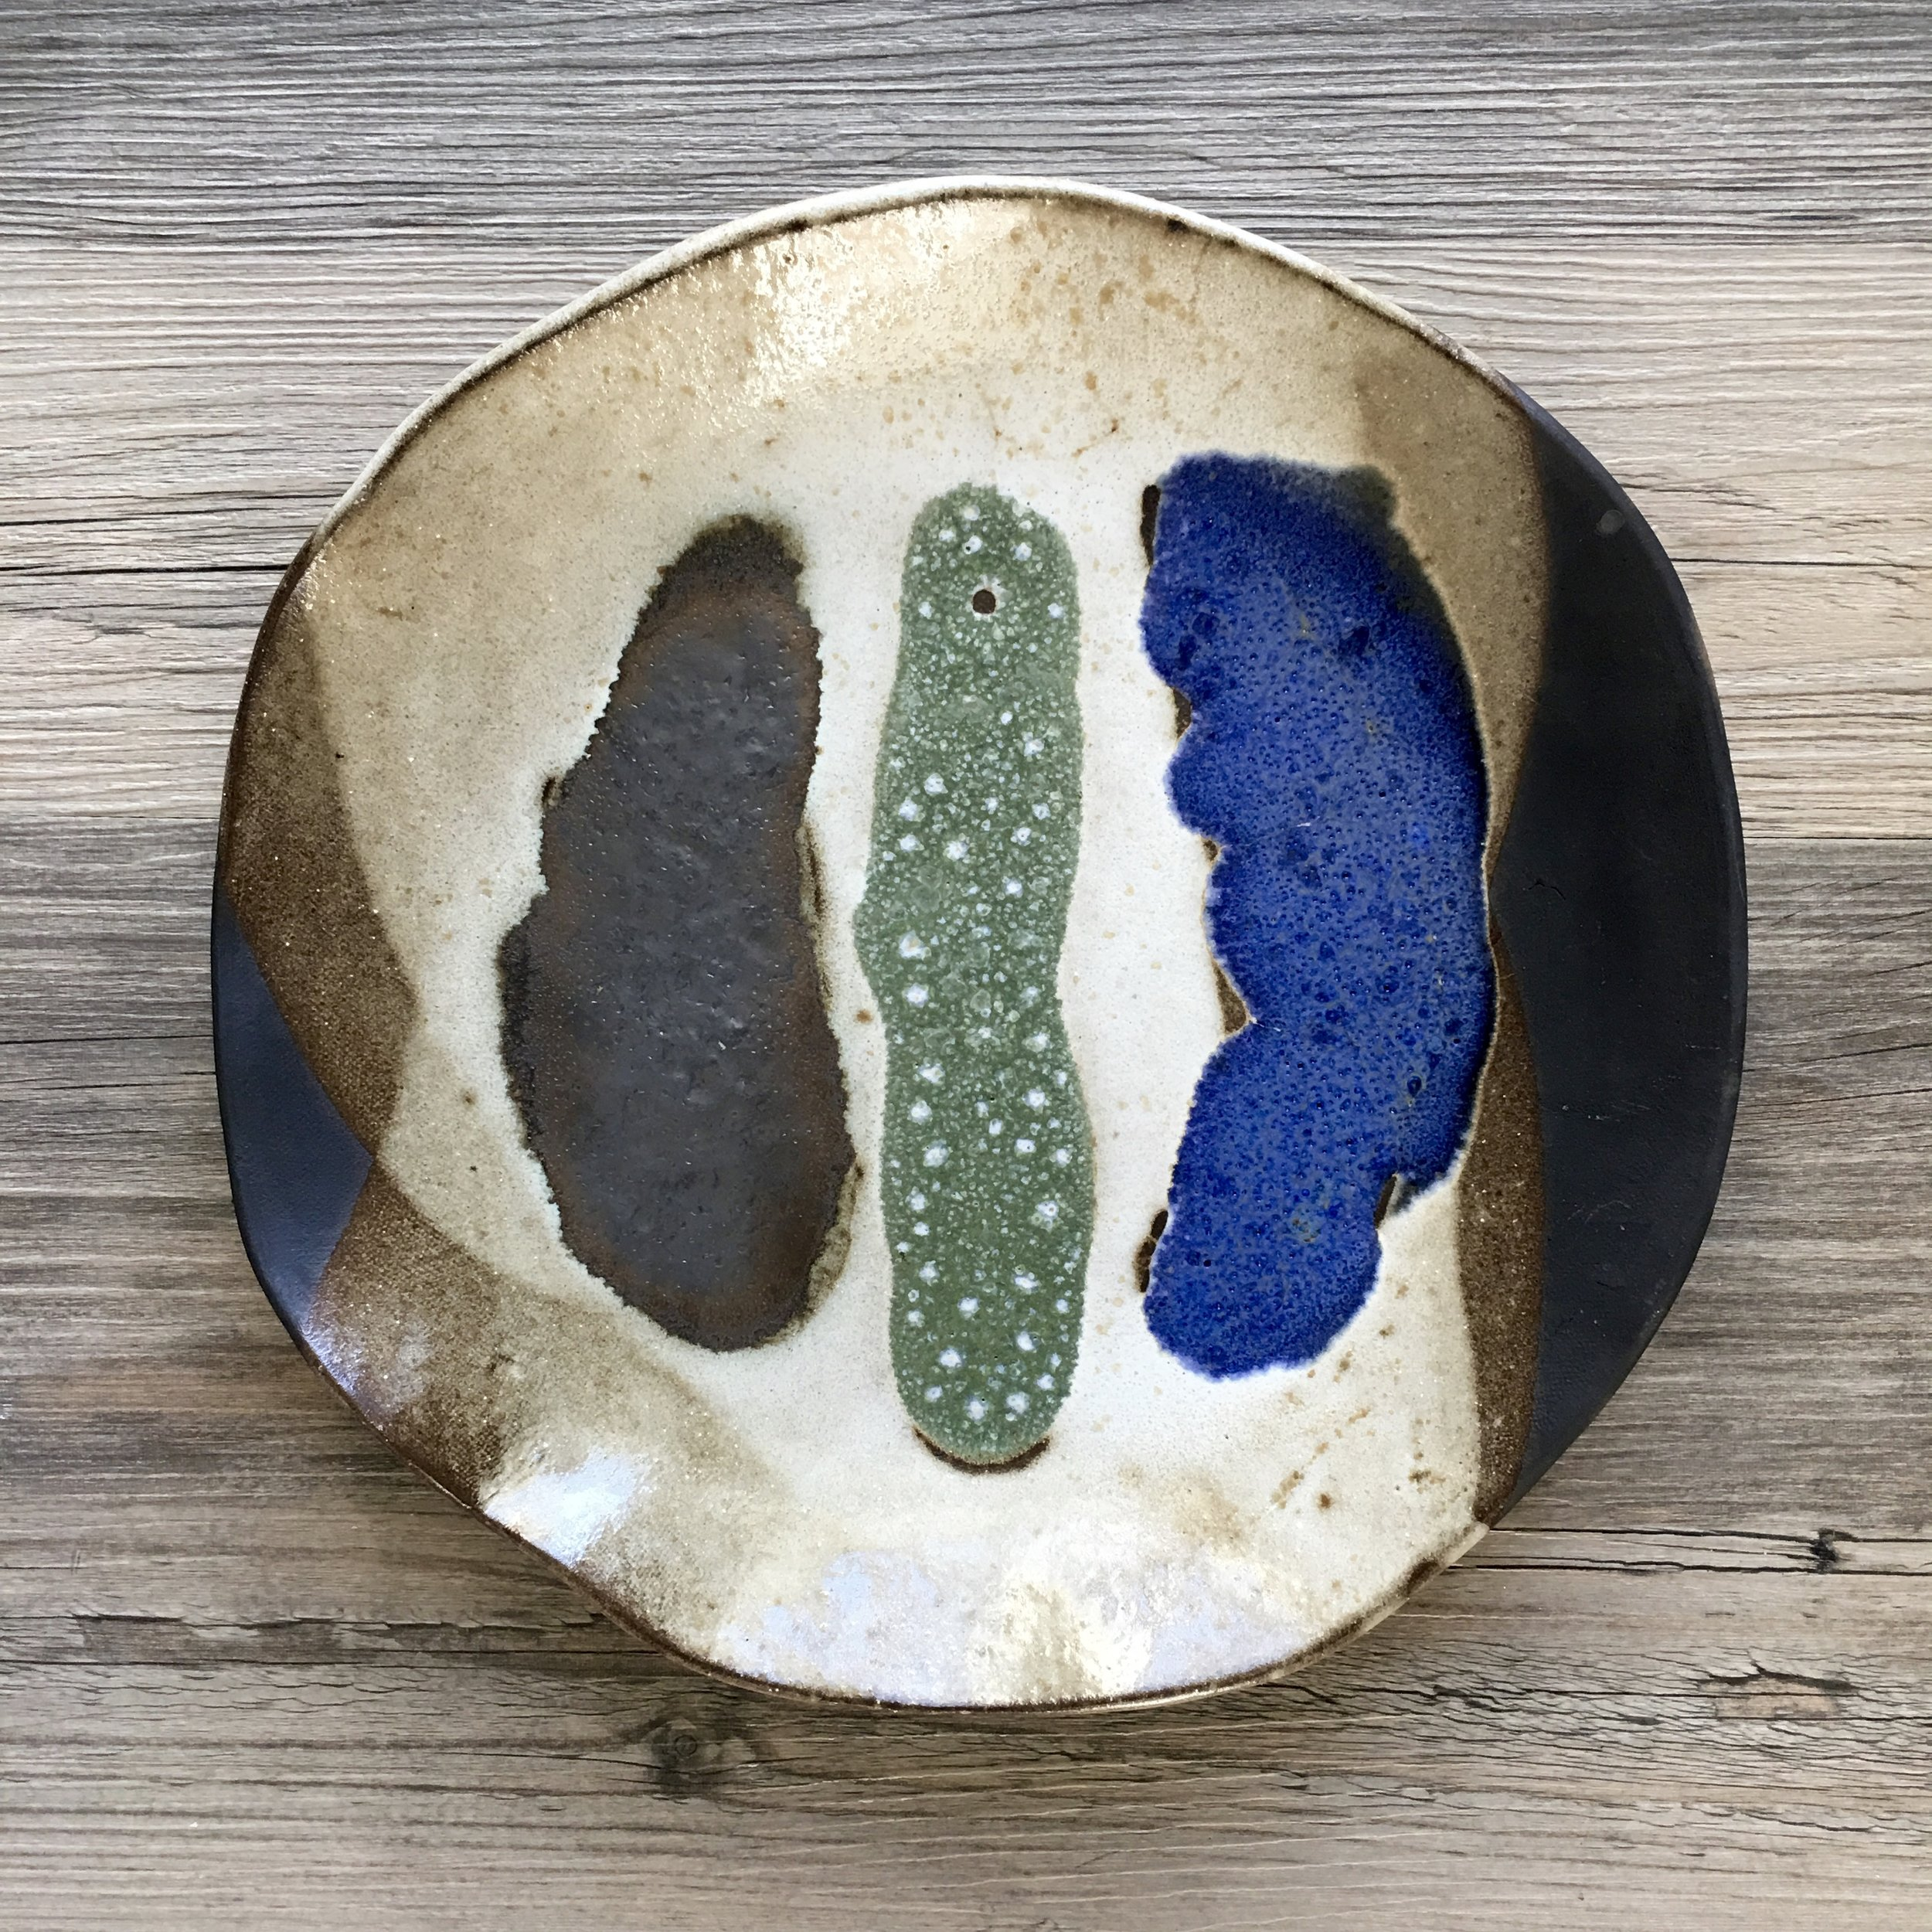 Decoration Ceramic Plate Wall Decor Collection Blue Door Ceramics